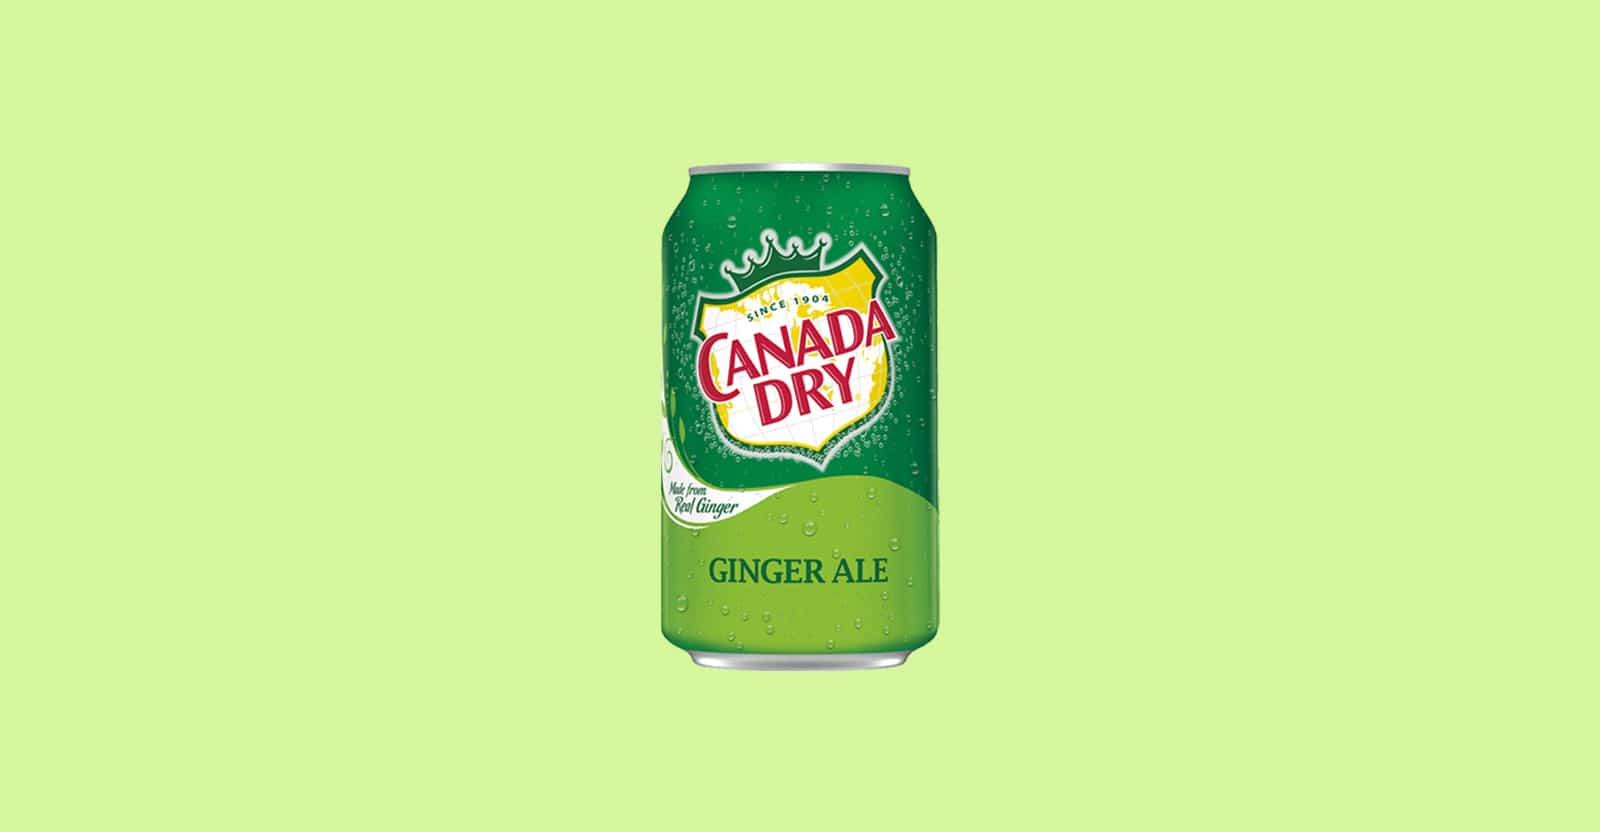 is canada dry gluten-free